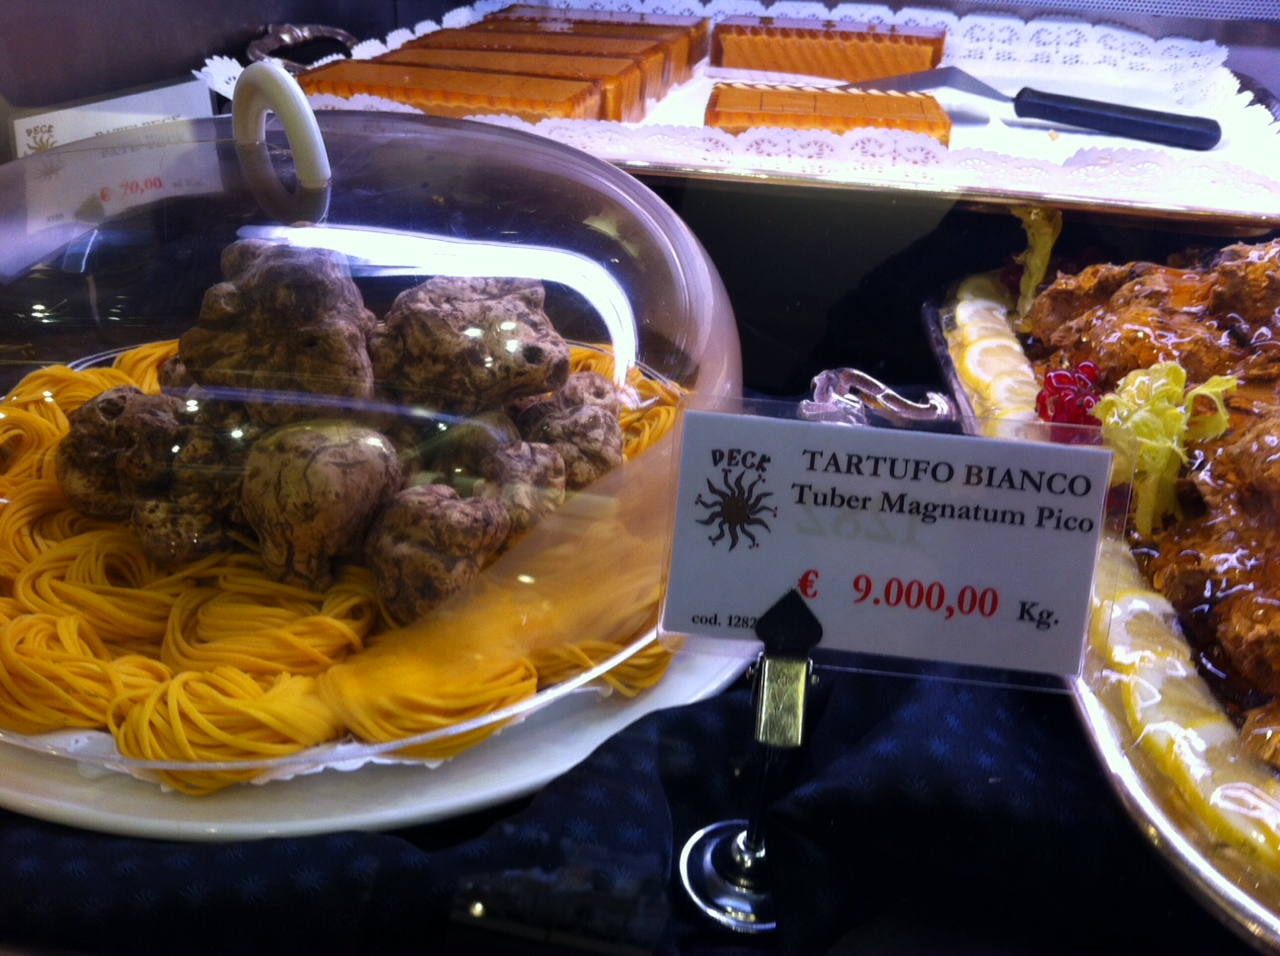 Euro per un chilo di tartufi come si arriva a for Ferro al chilo